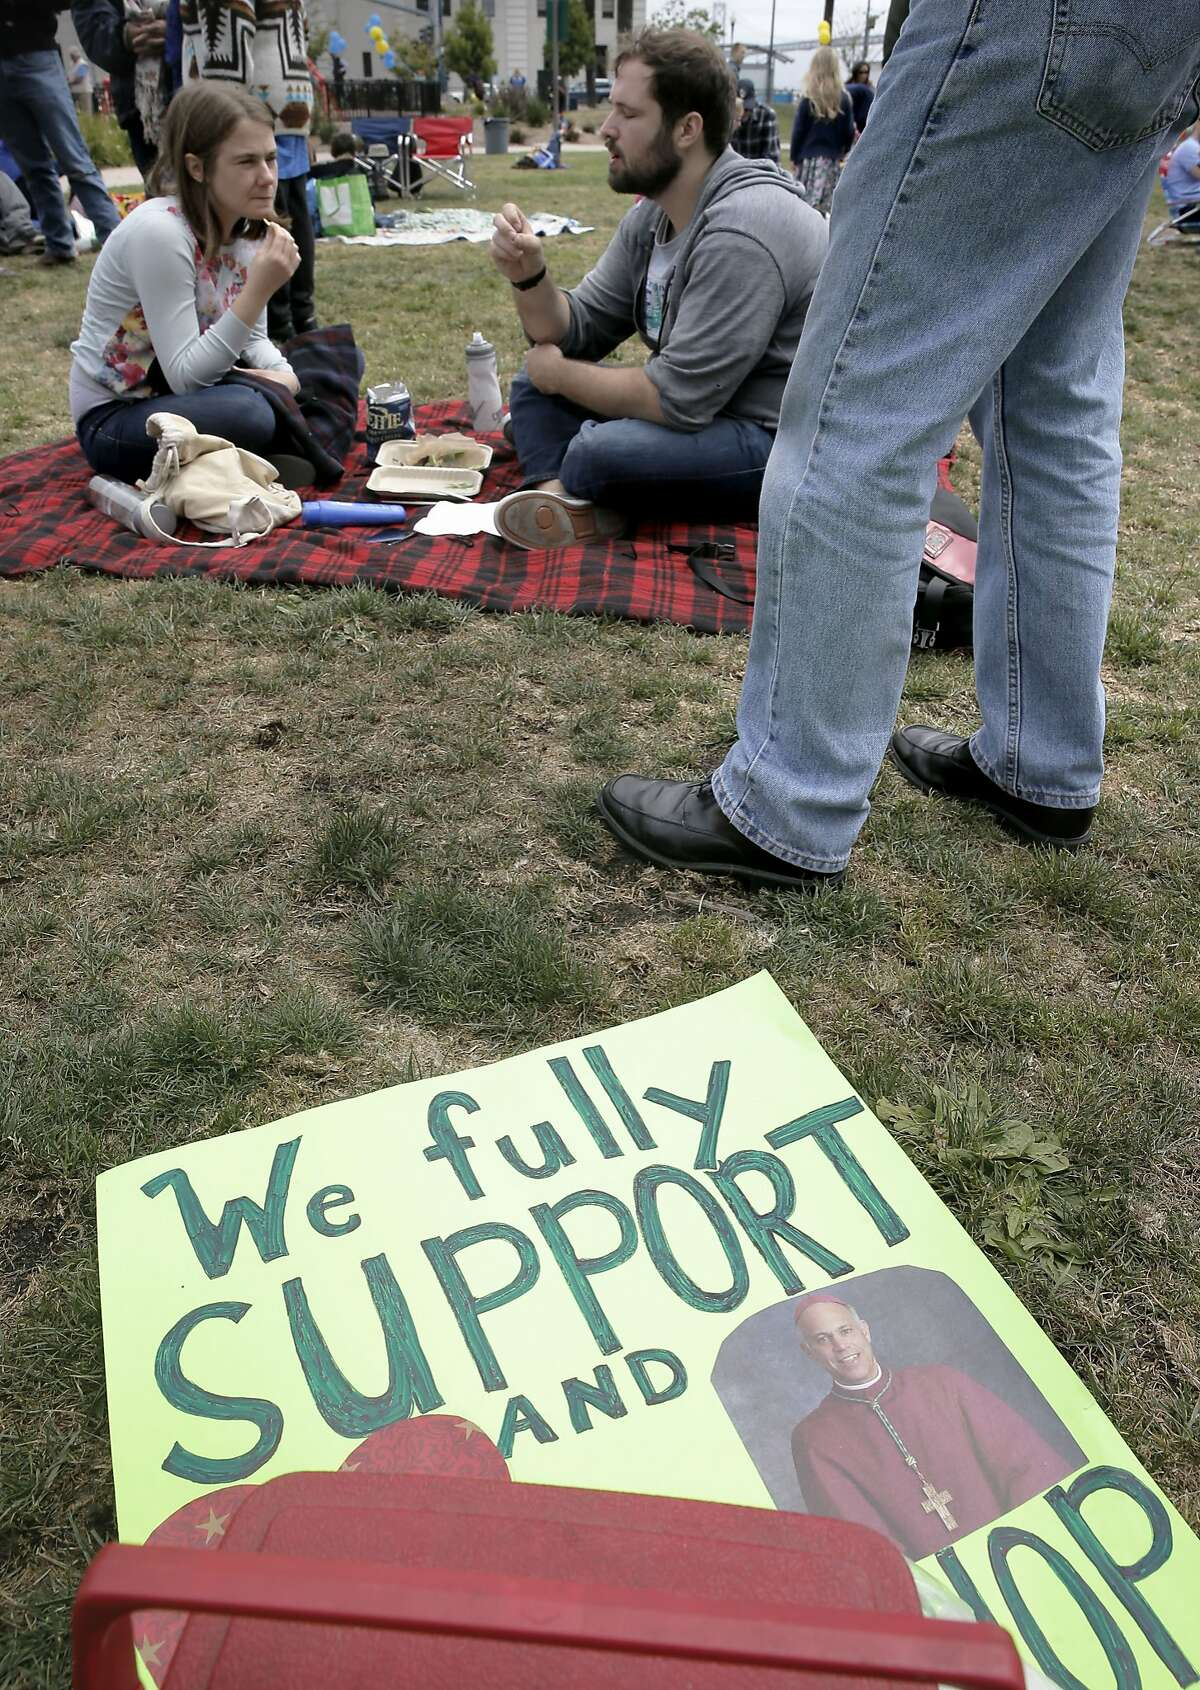 Maria Sitzman, of San Rafael and Blake Landry, of New Orleans joined the gathered crowd to show support for San Francisco Archbishop Cordileone during a picnic at the Sue Bierman Park along the Embarcadero as seen on Sat. May 16, 2015, in San Francisco, Calif.